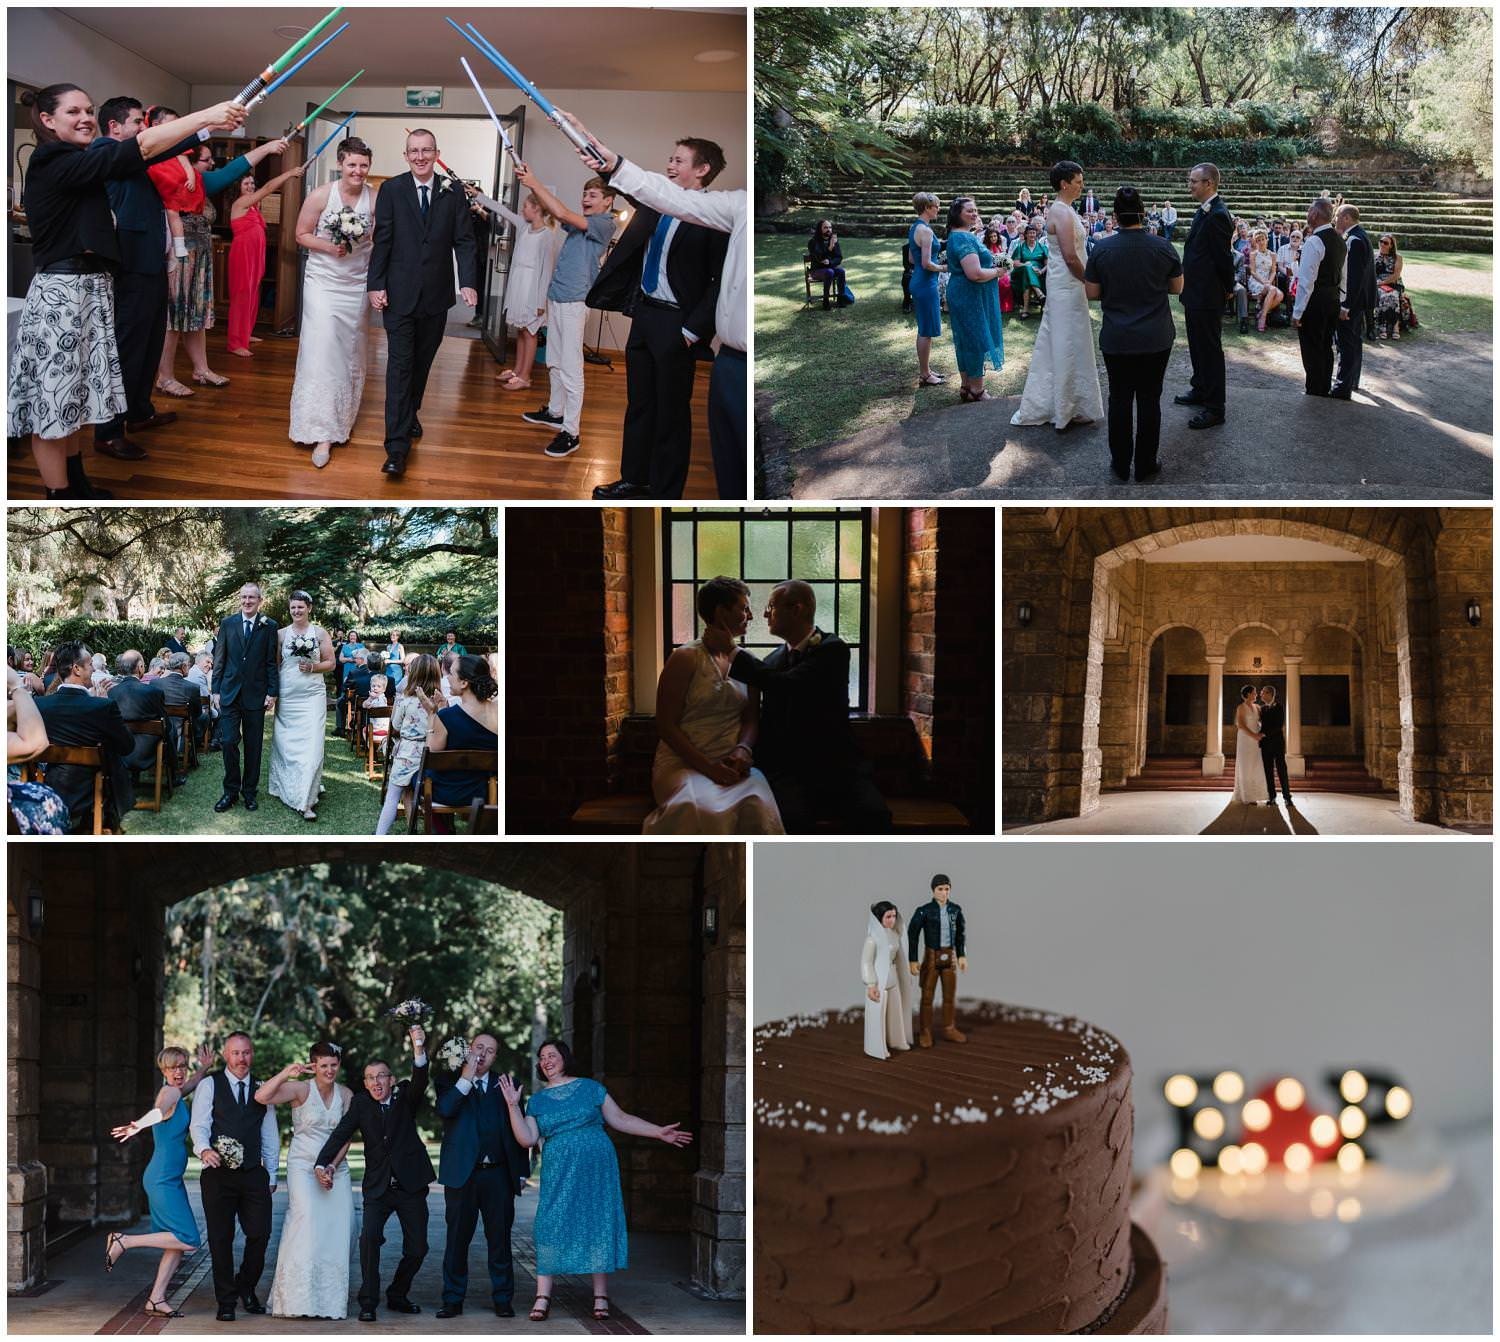 Elwyn + Phil - UWA Wedding